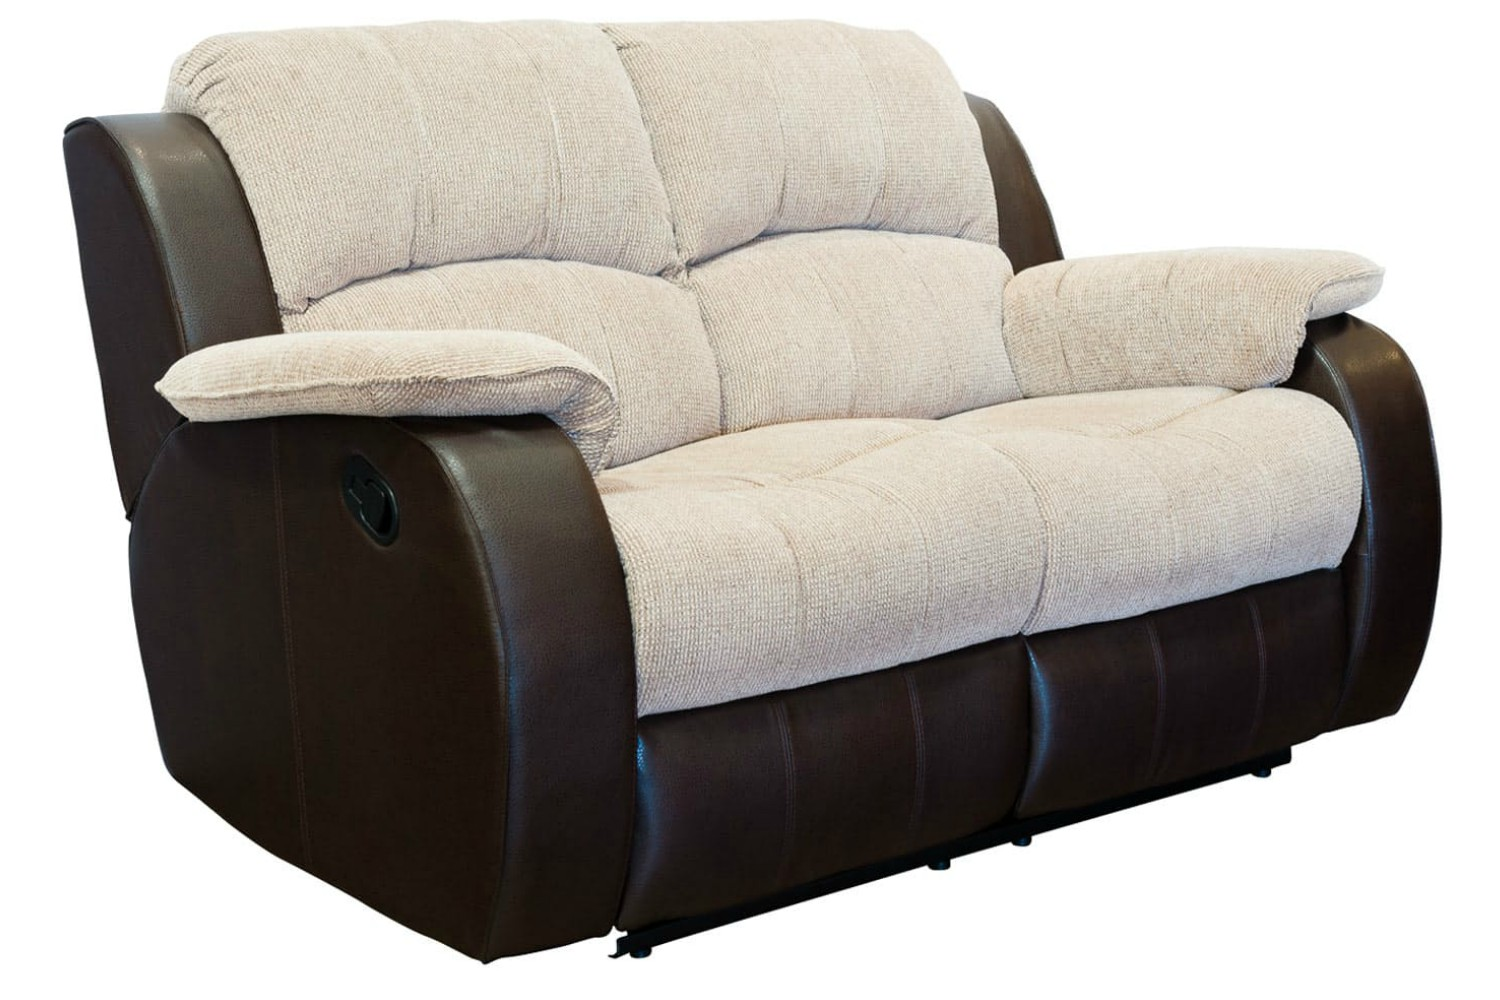 leather recliner chairs harvey norman mid century folding chair 2 seater sofa the malvern sherborne